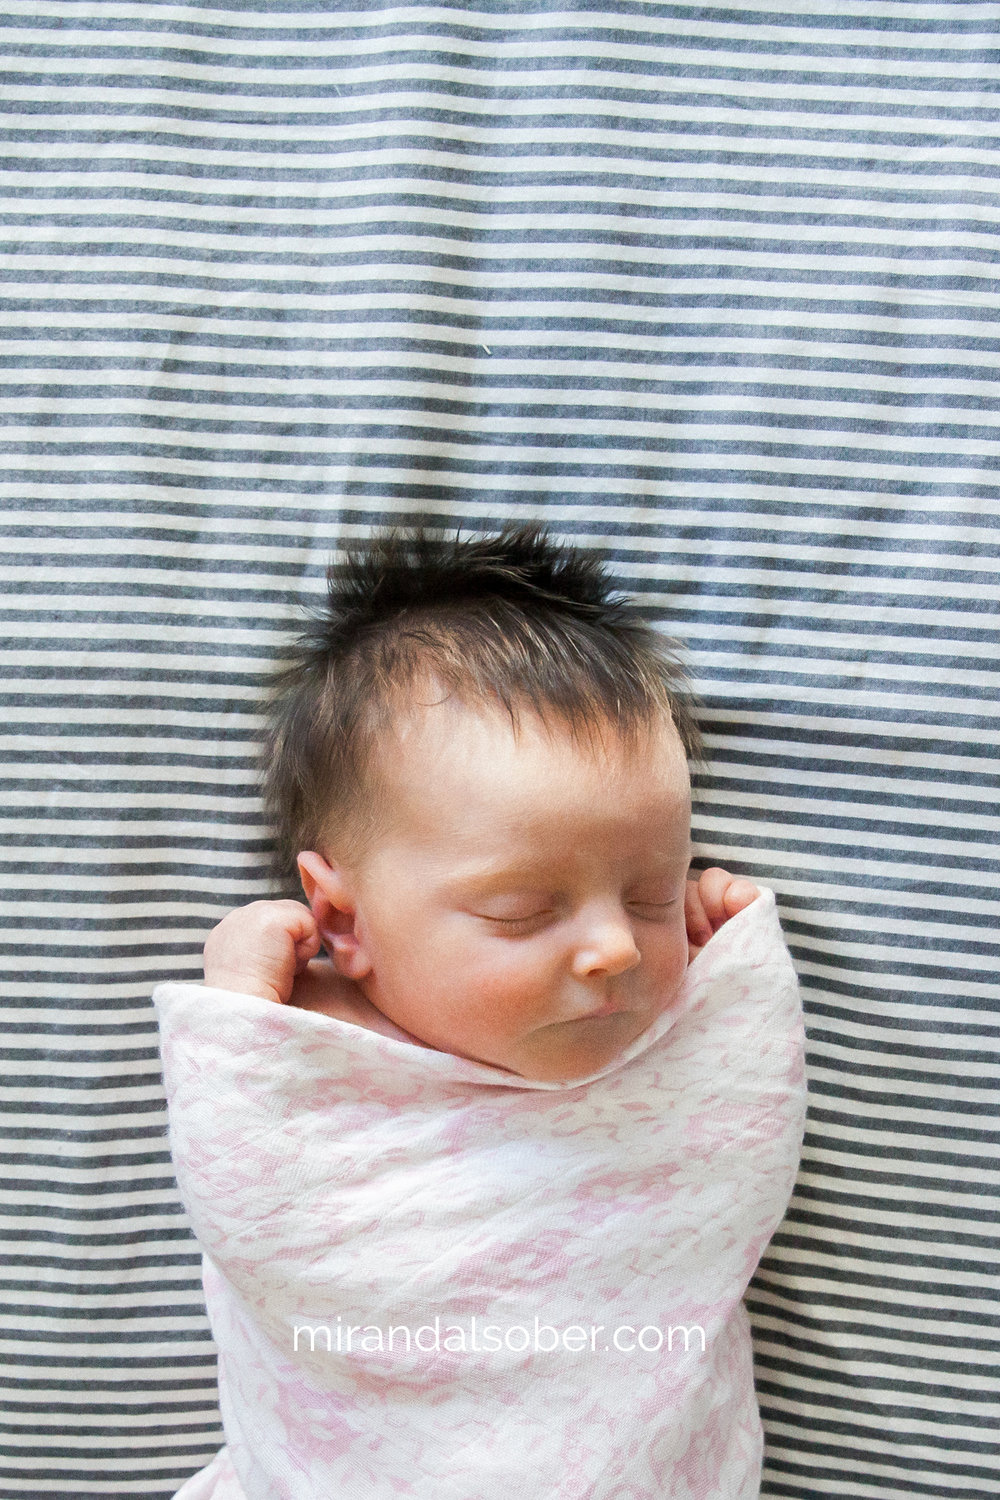 denver-lifestyle-newborn-photographer-15